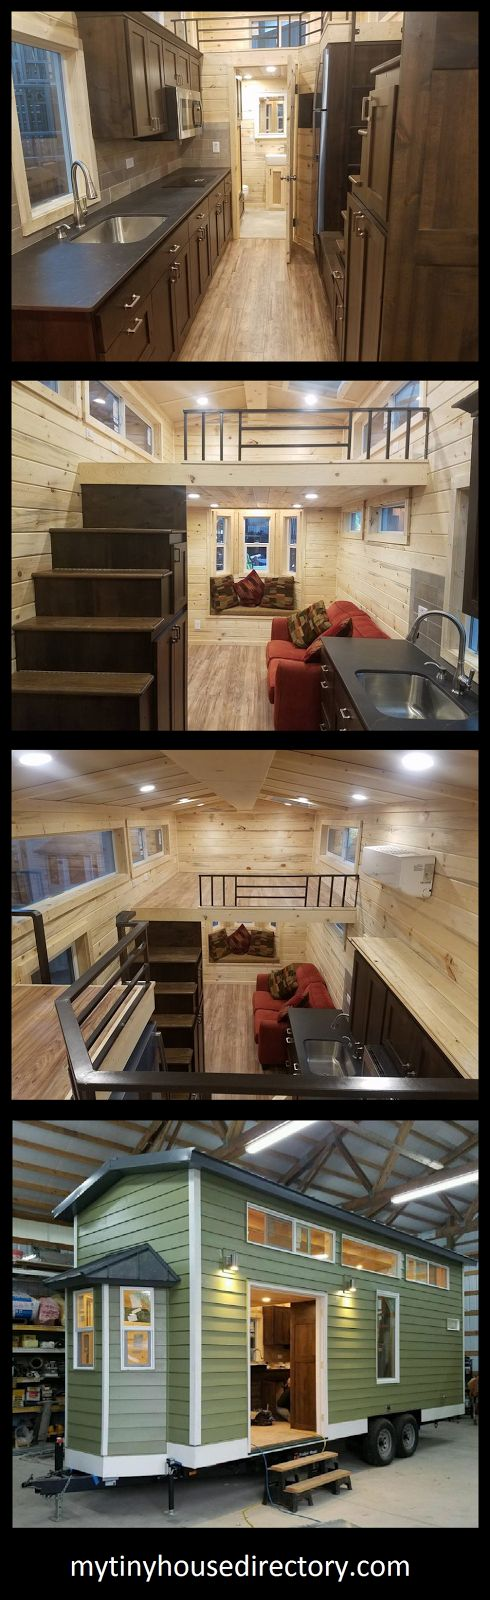 Meet CADO the Tiny Home   Set on a custom built 24 ft trailer.   8 ft by 24 ft main floor and  2 large lofts   Custom interior and a beauti...